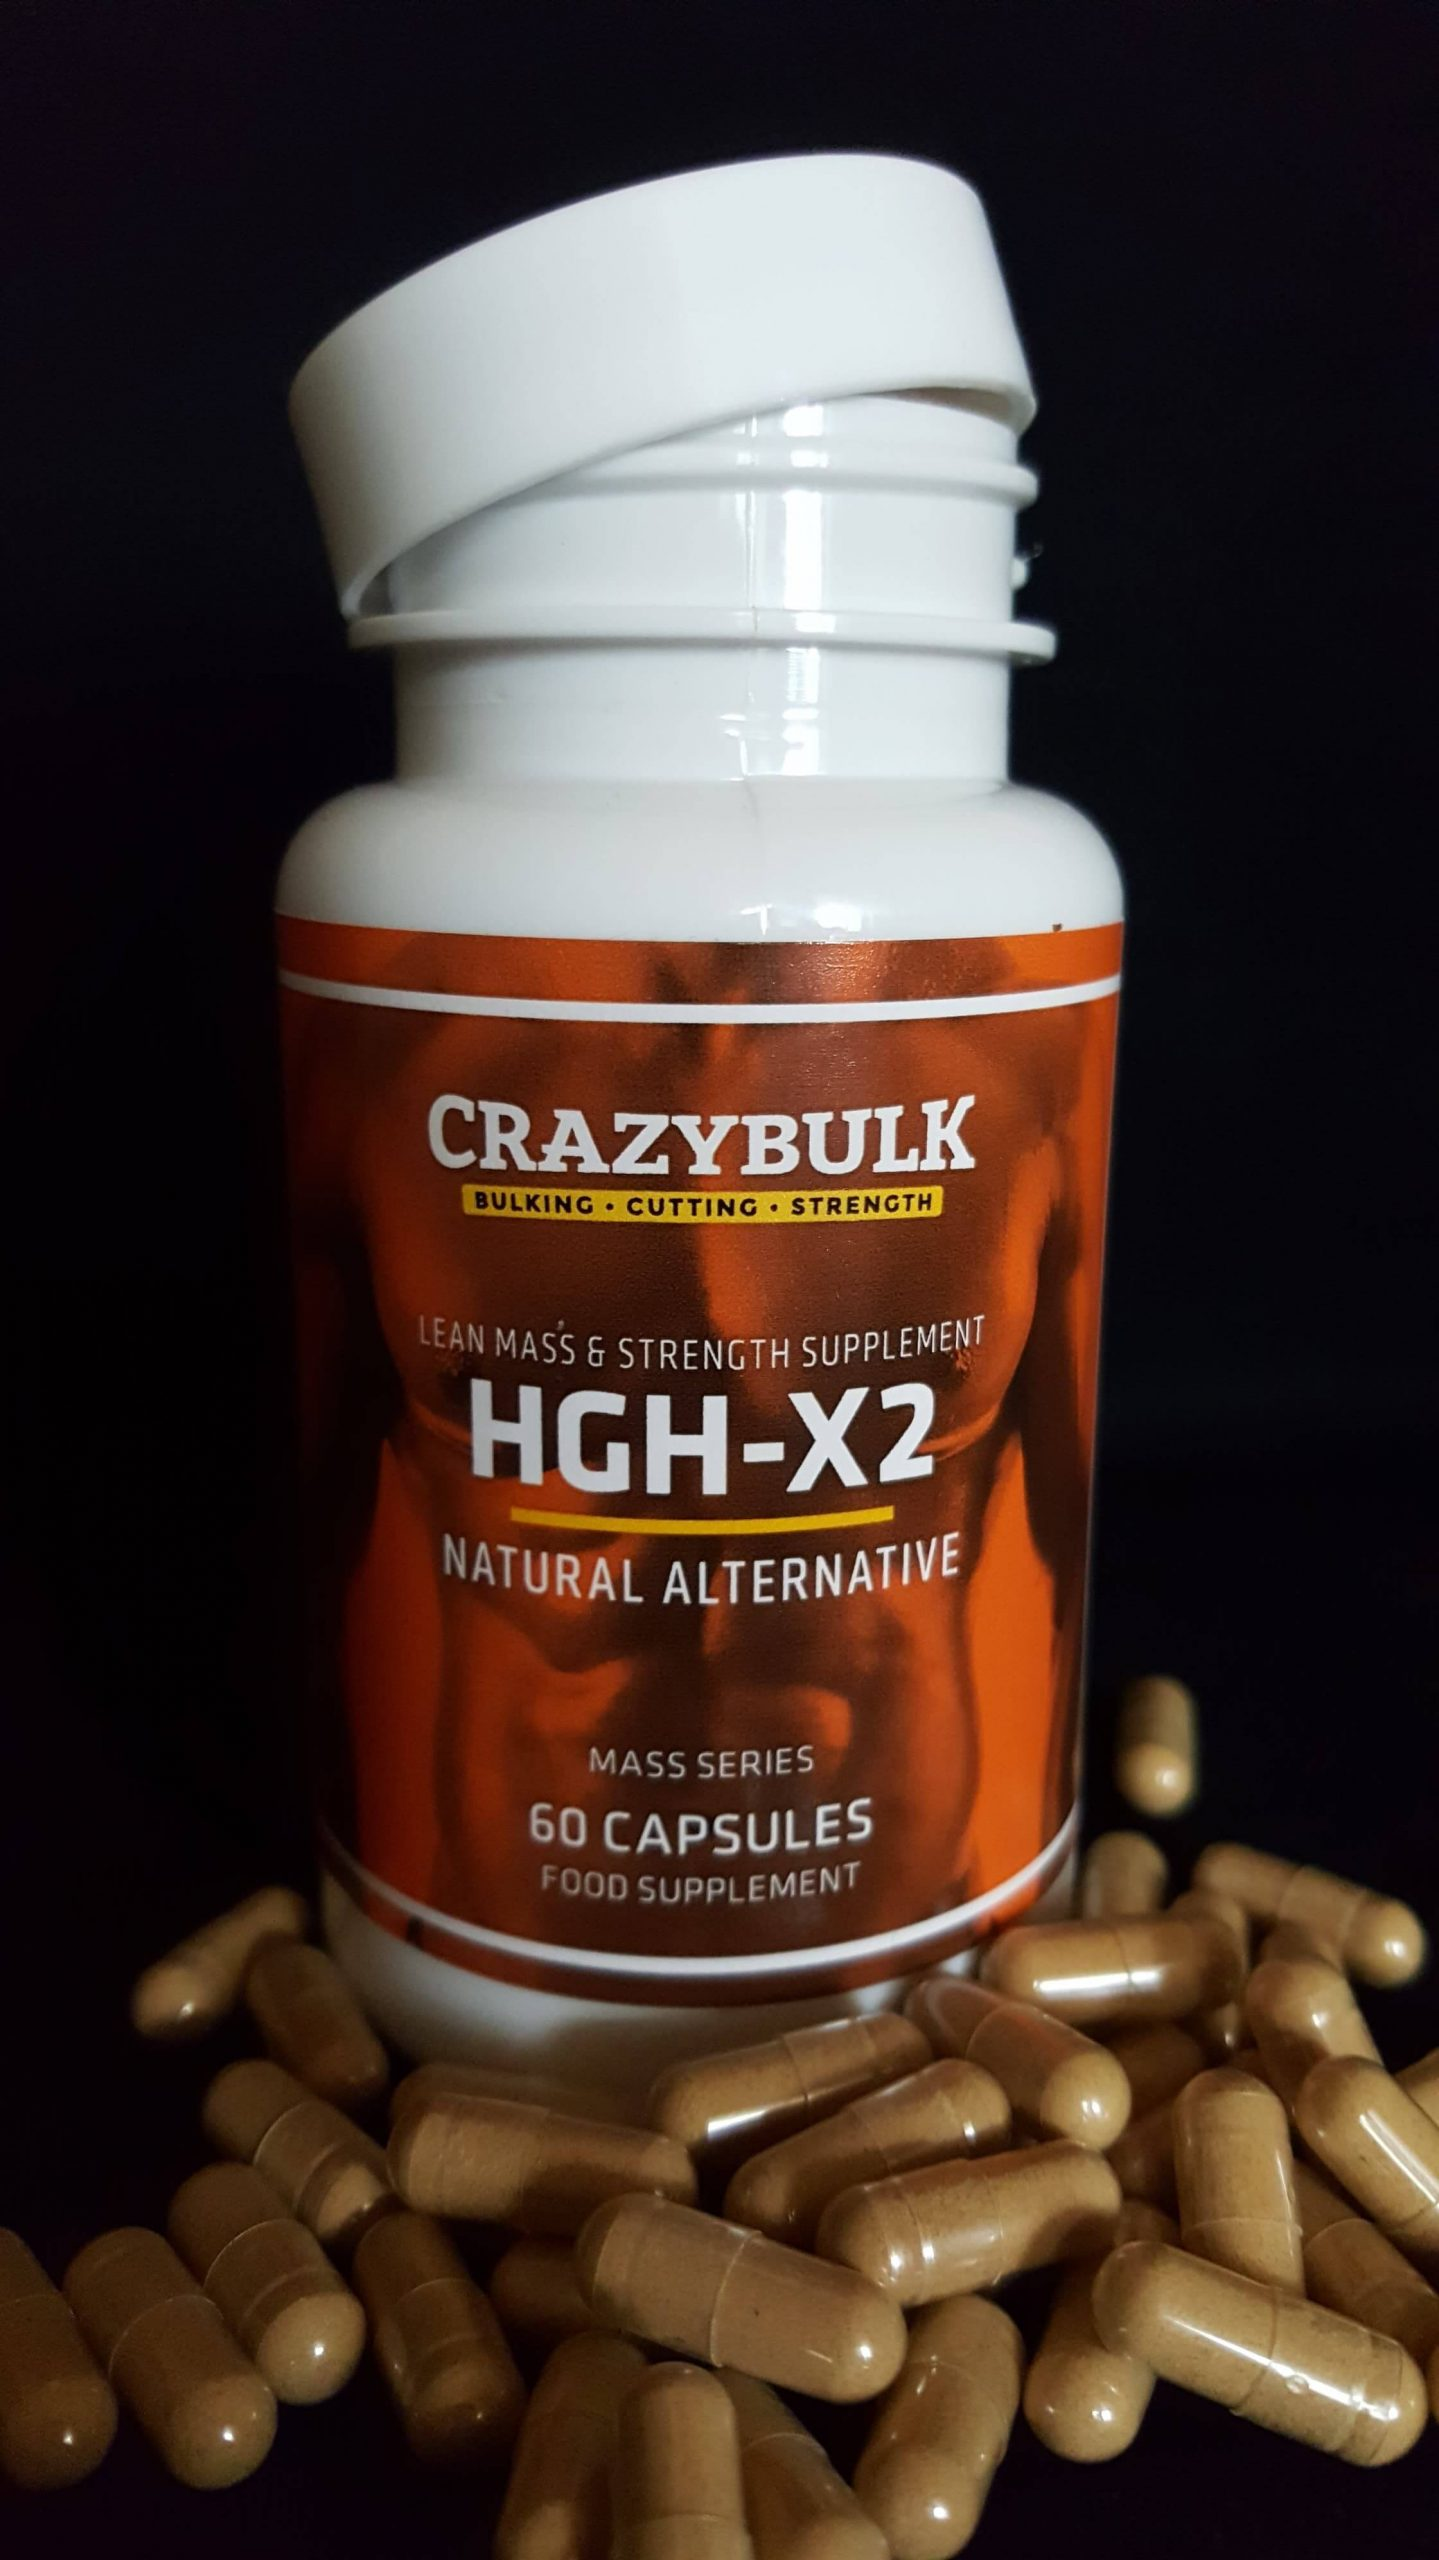 hgh-x2 crazy bulk supplement